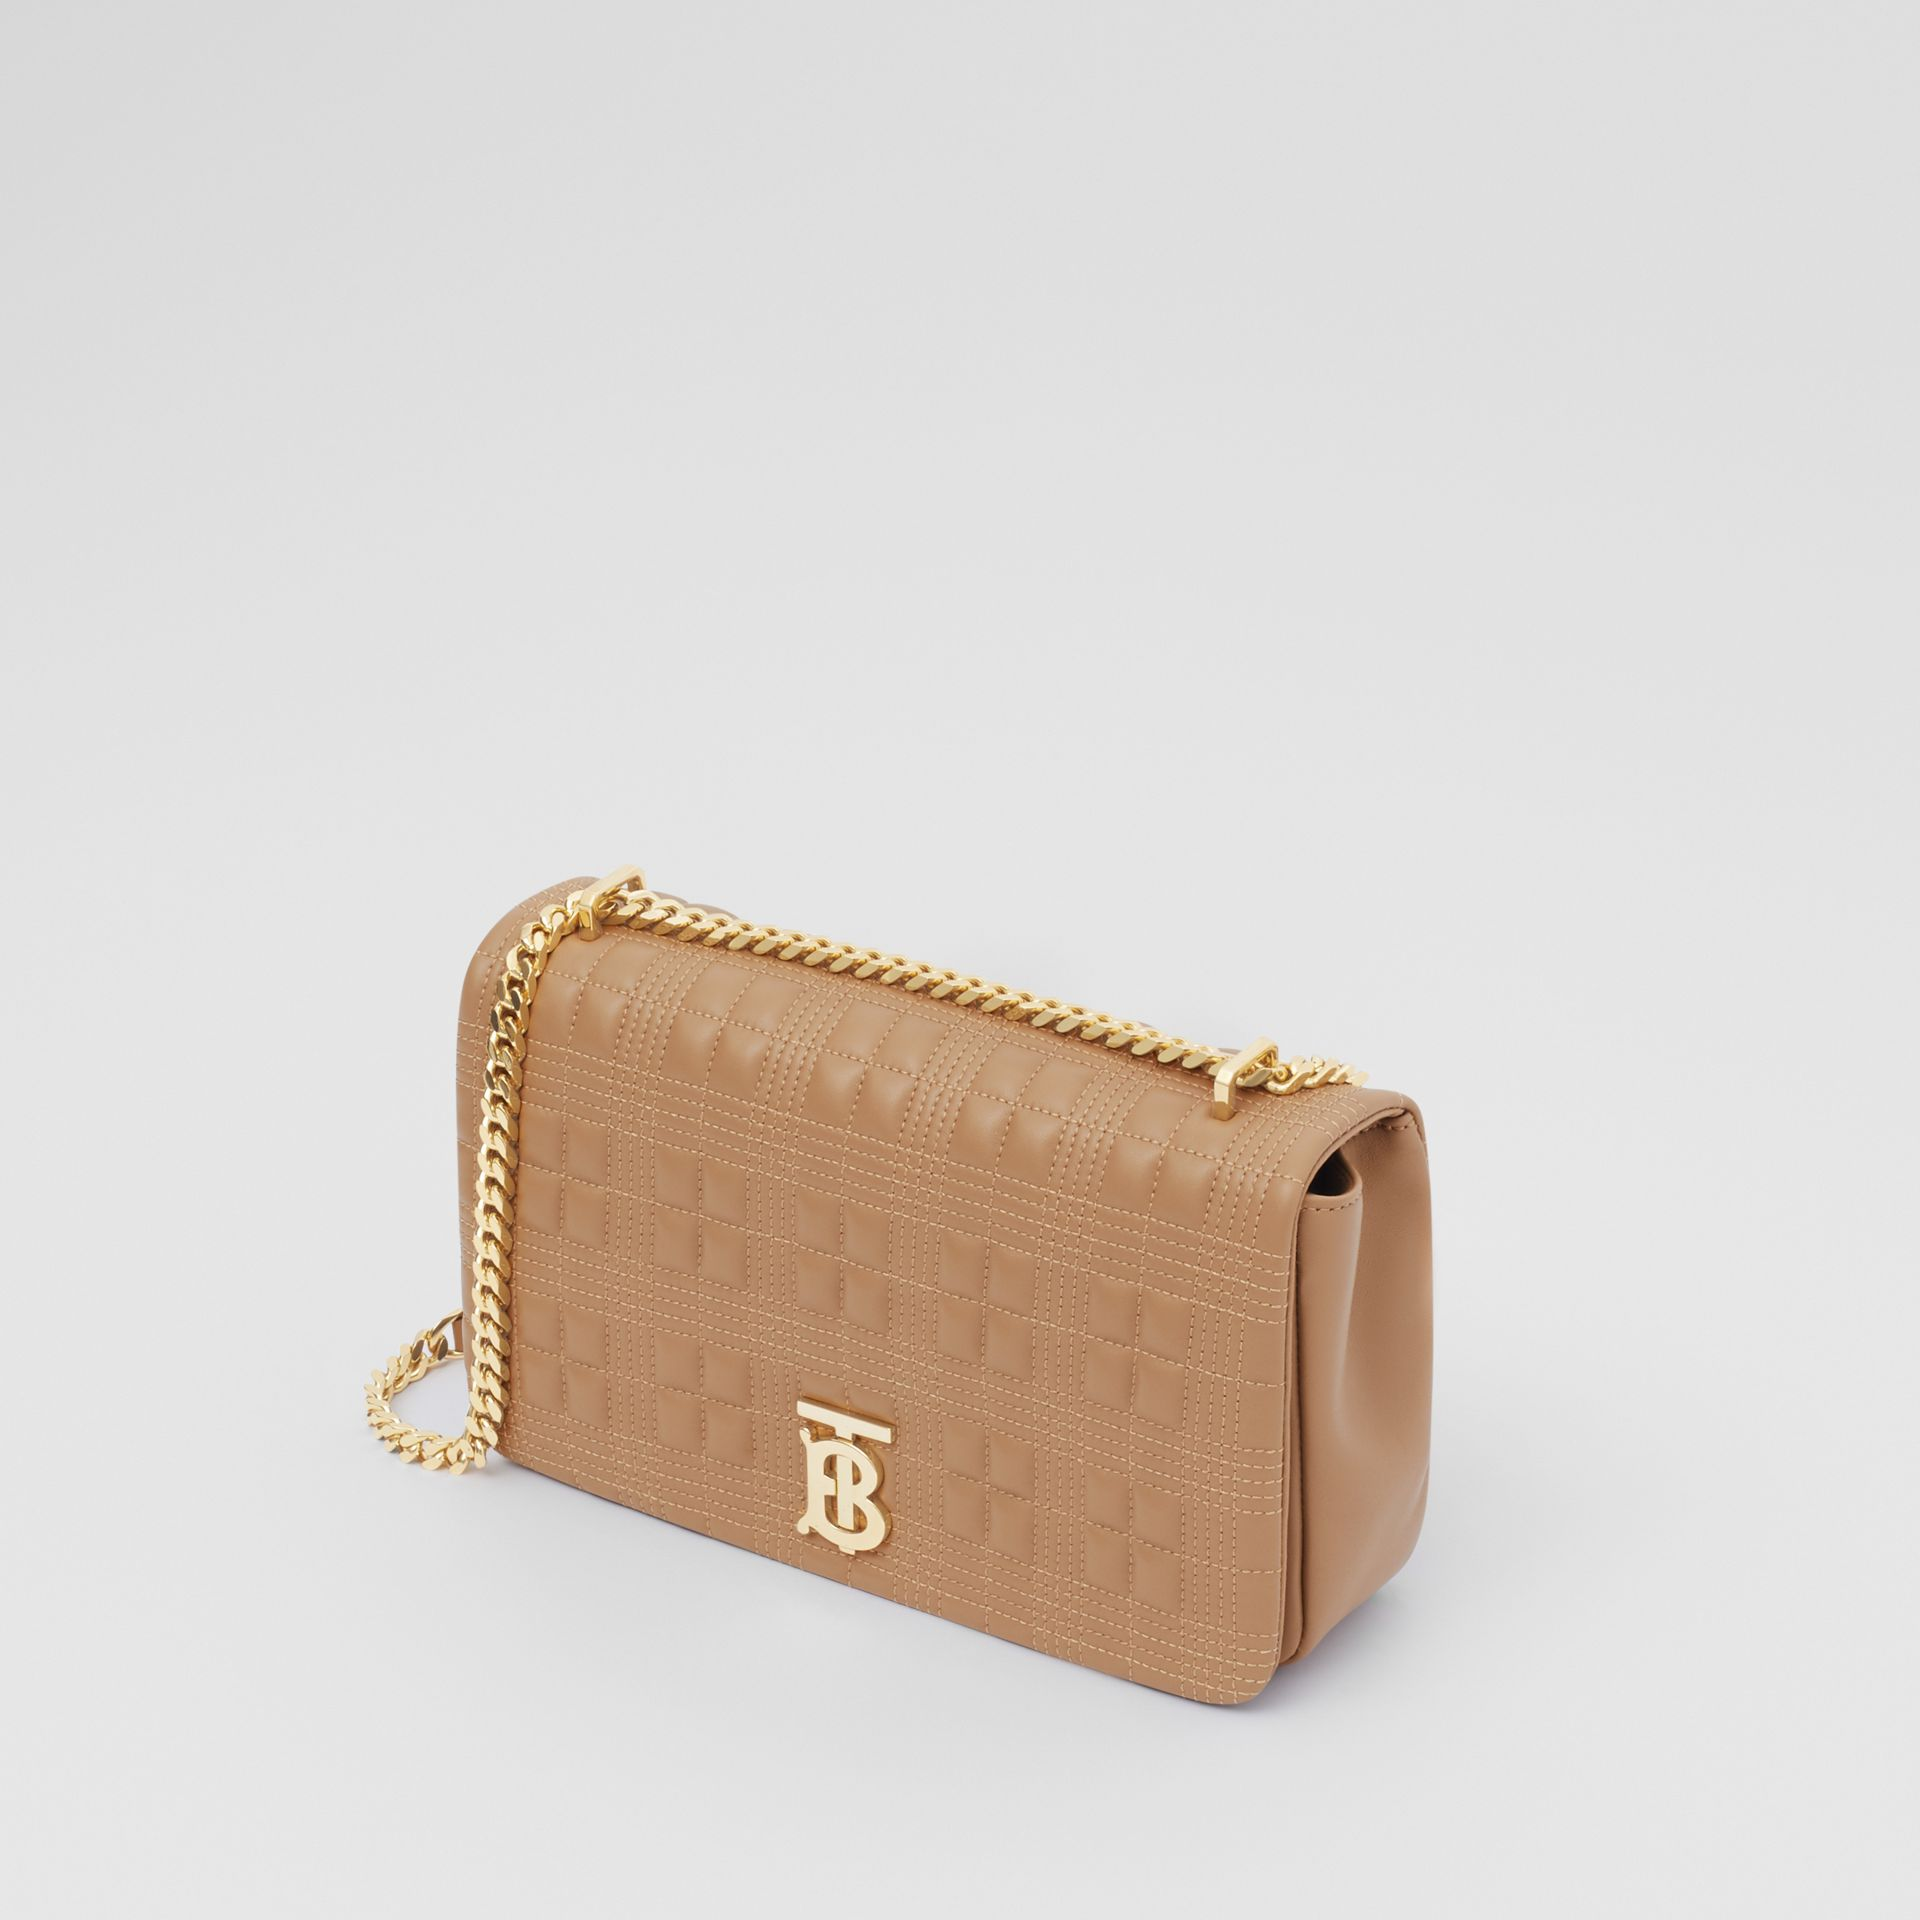 Medium Quilted Lambskin Lola Bag in Camel - Women | Burberry - gallery image 5